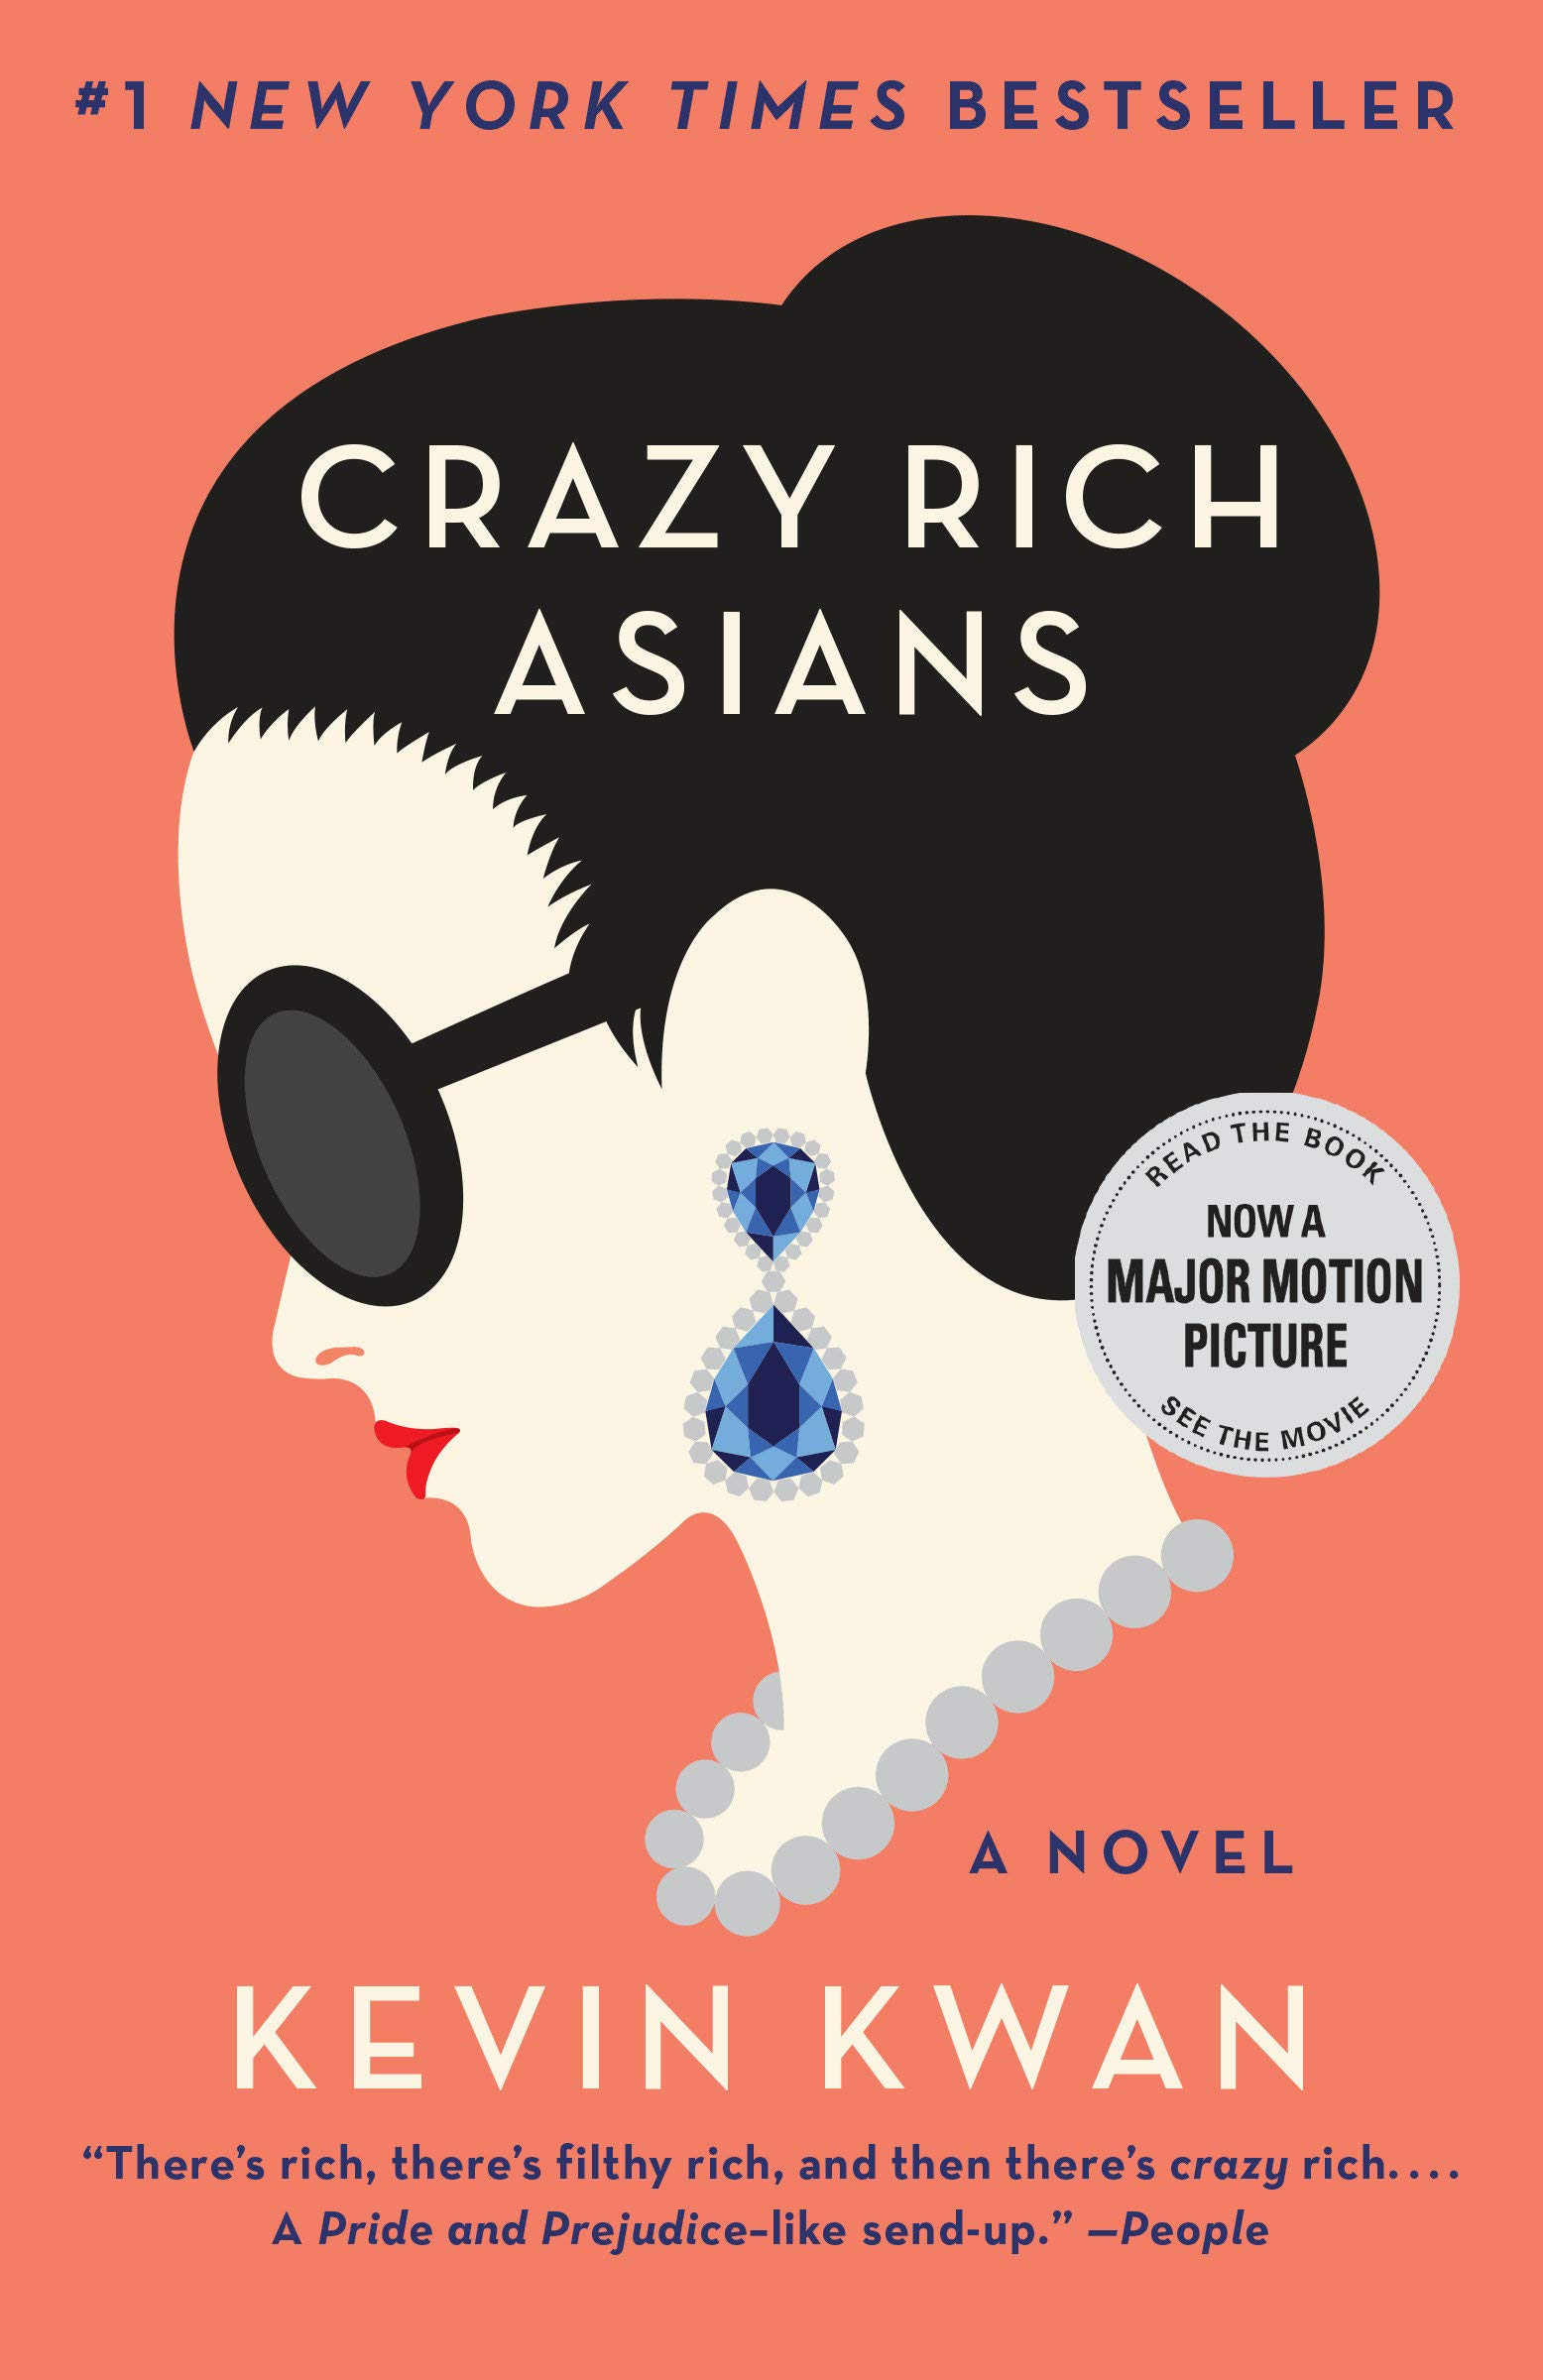 Crazy Rich Asians (Crazy Rich Asians Trilogy): Amazon.es: Kevin Kwan: Libros en idiomas extranjeros